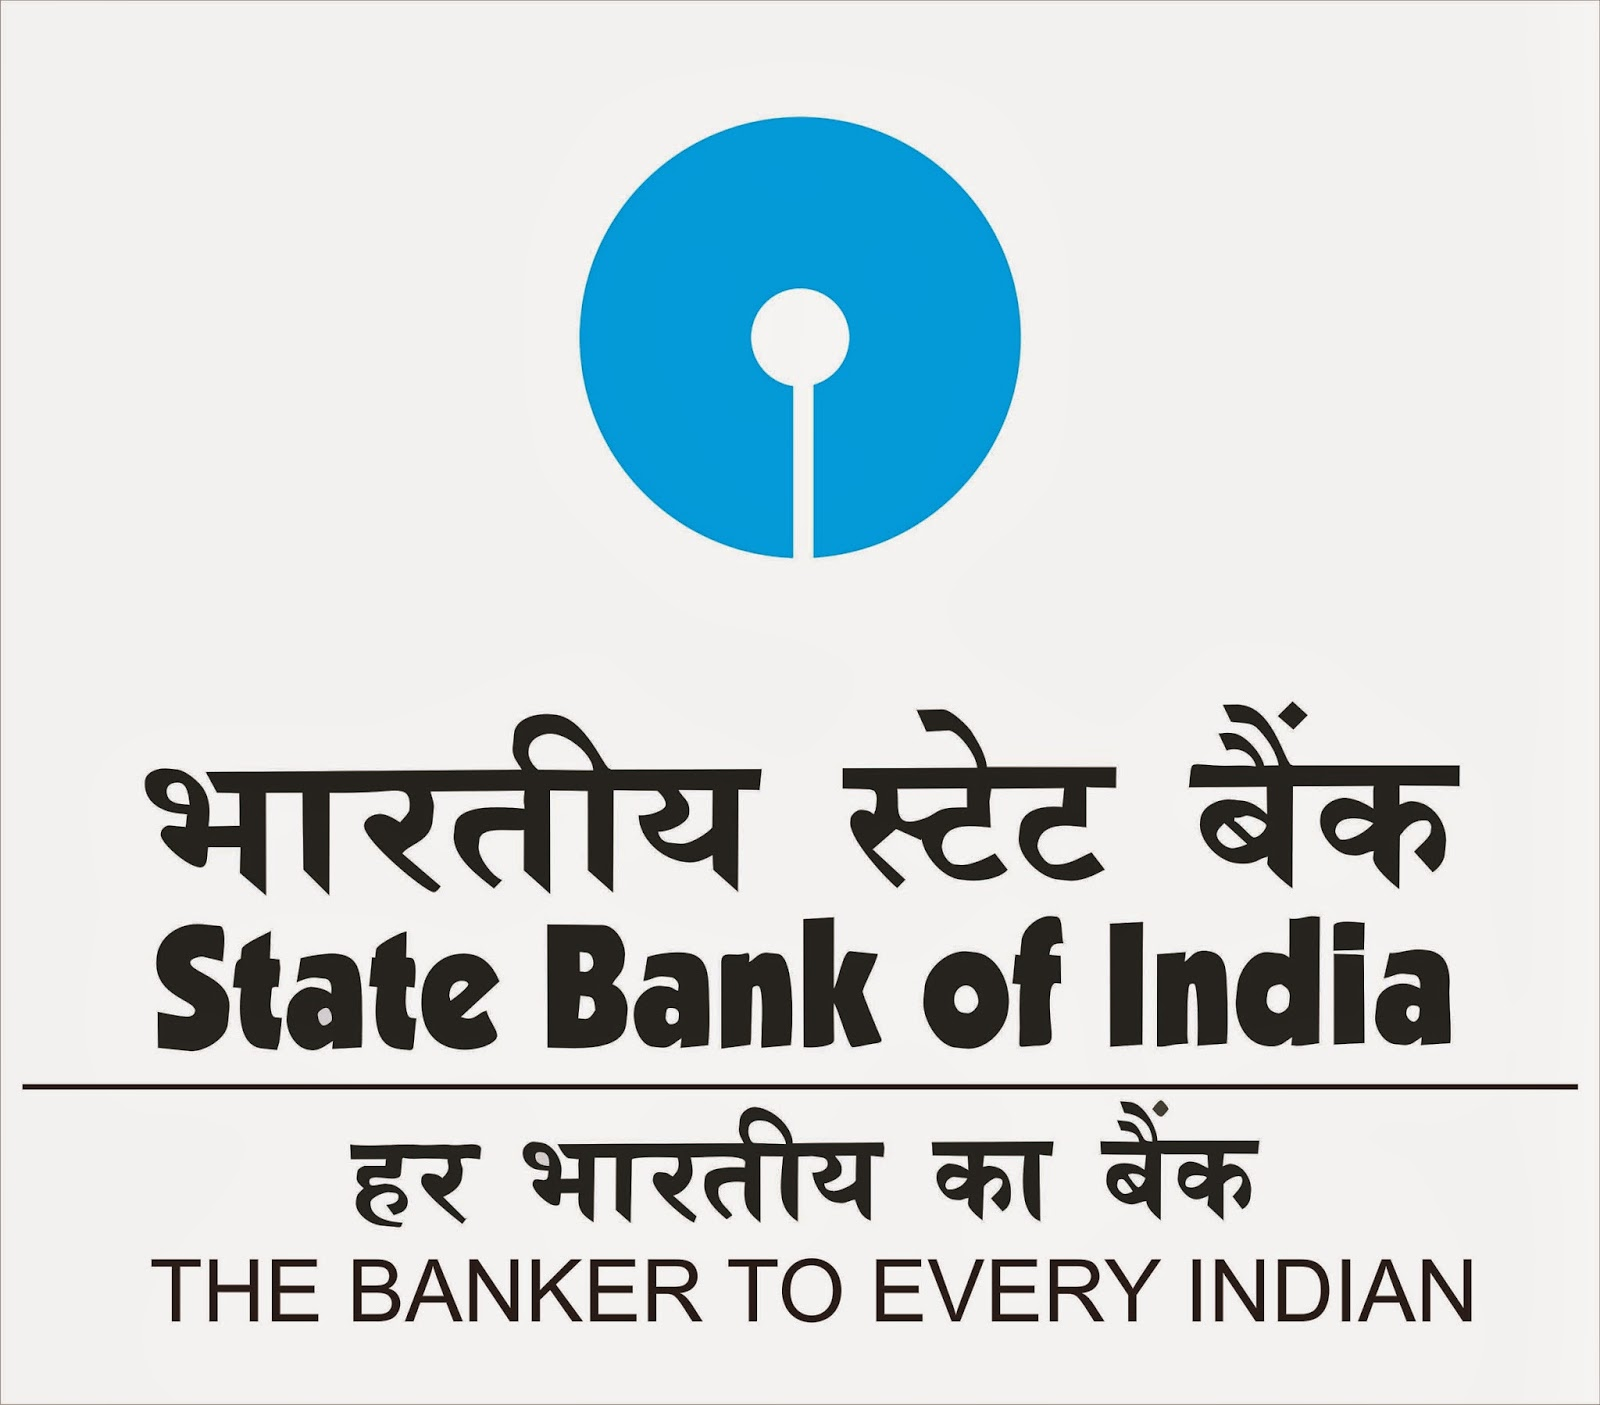 What's the story behind State Bank of India logo? - Quora